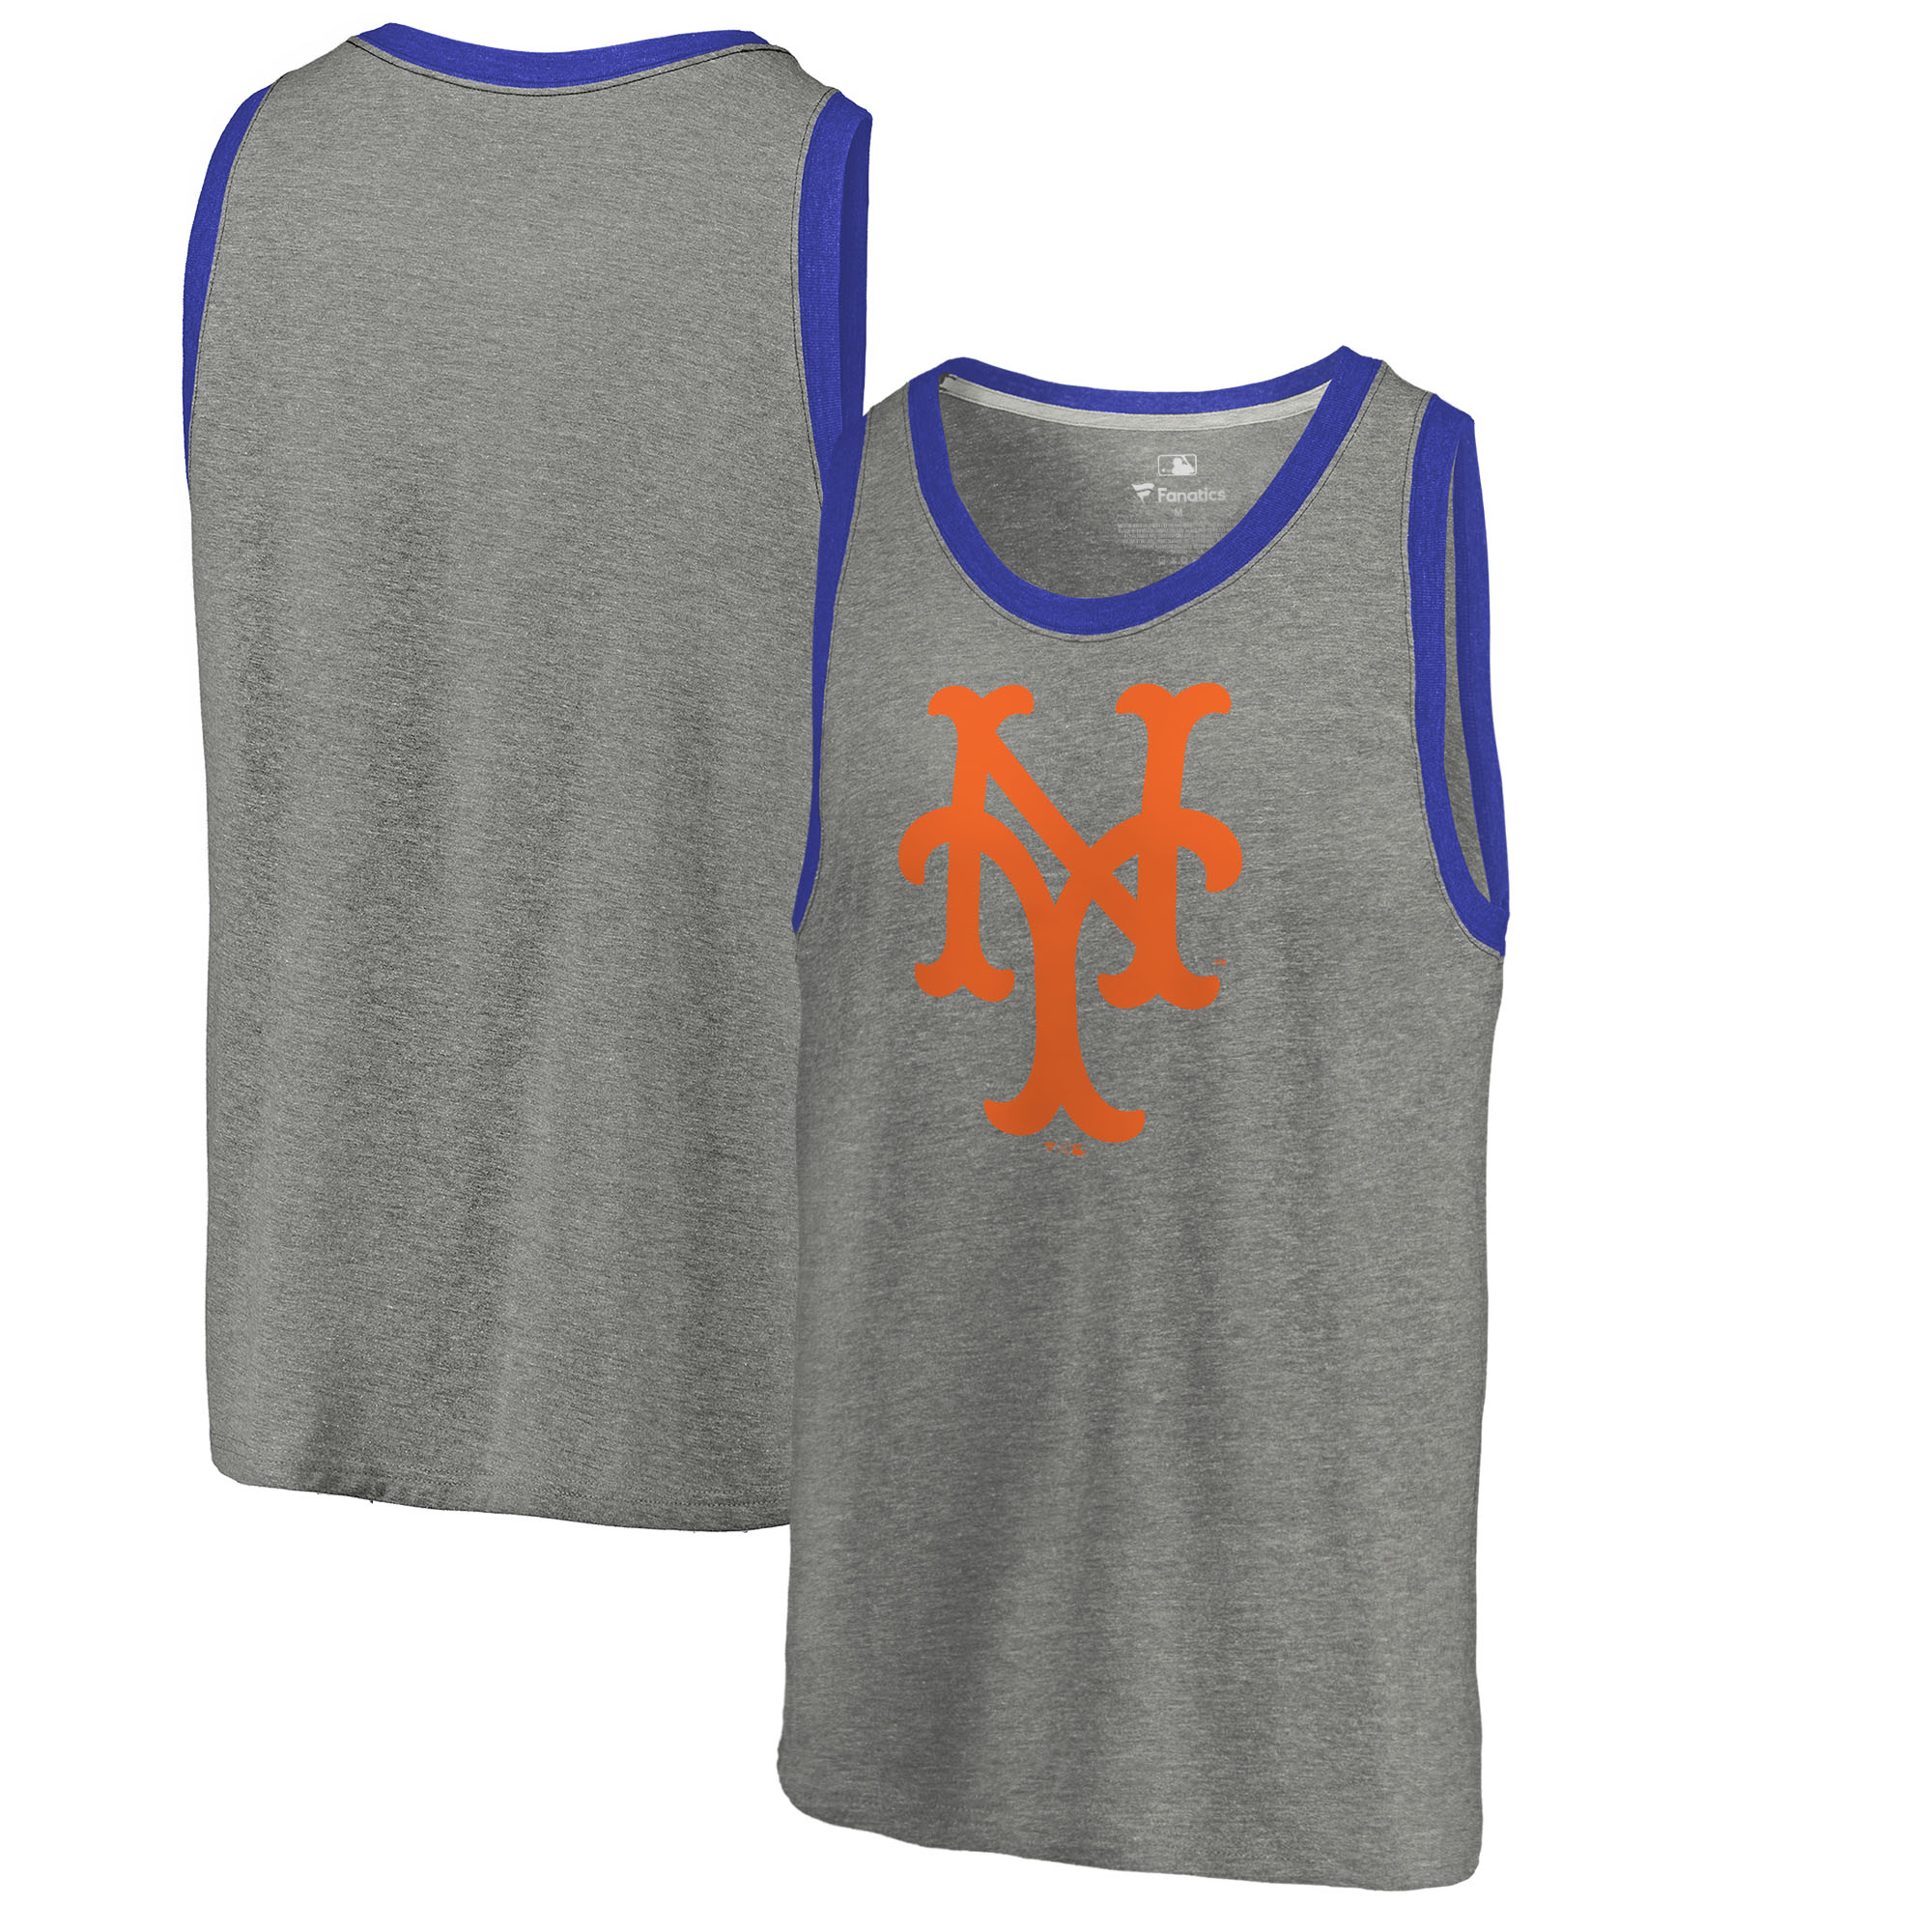 New York Mets Fanatics Branded Cooperstown Collection Huntington Tri-Blend Tank Top - Heathered Gray